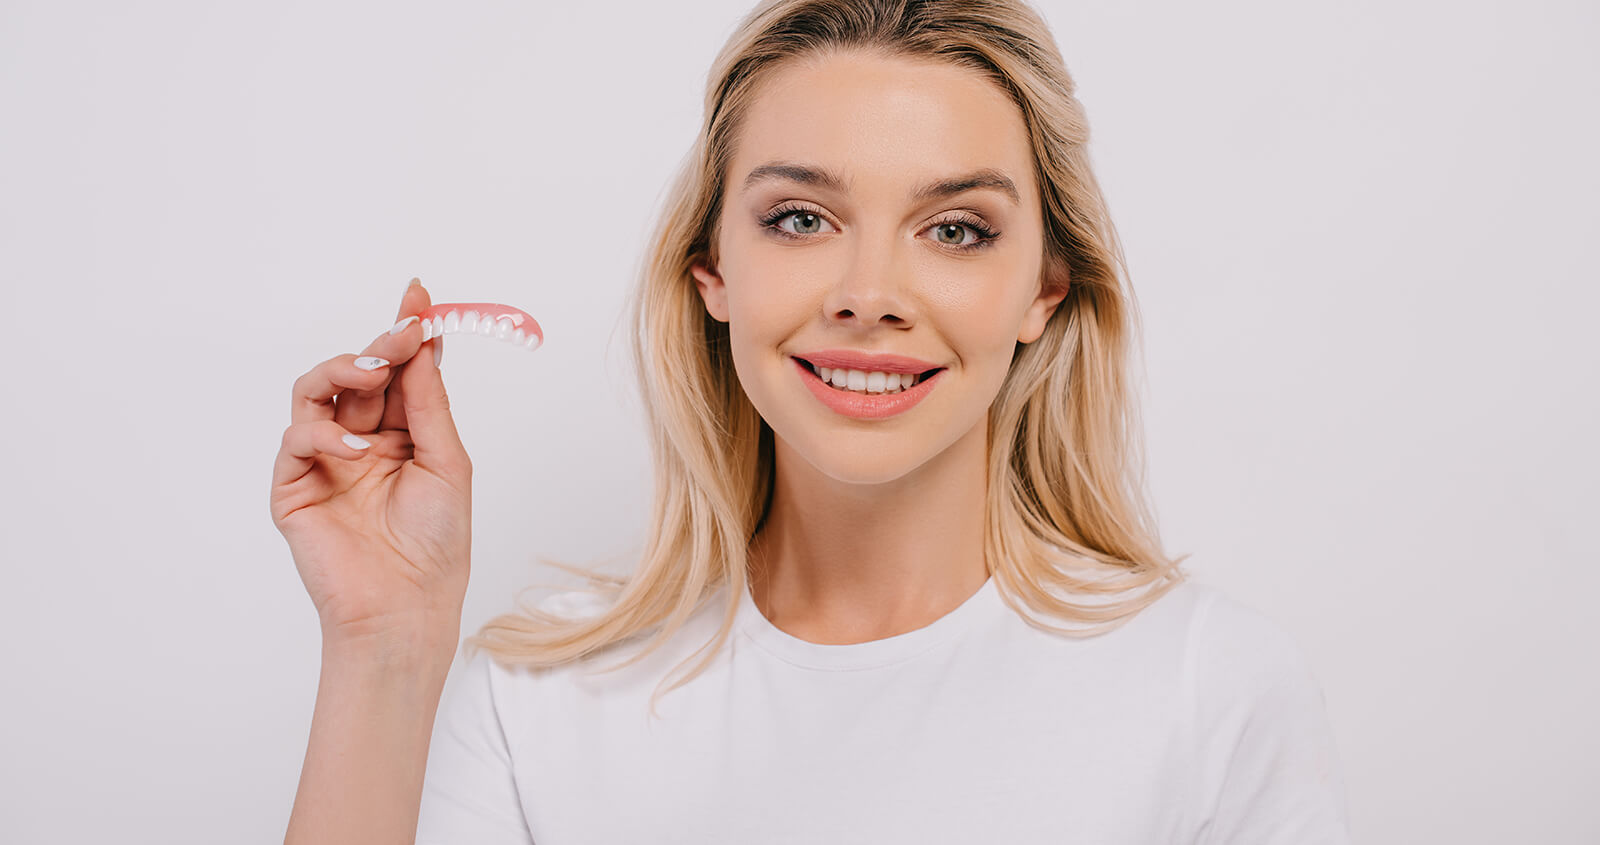 Natural-looking Dentures Made Available from Dentist in Highland, MI for Young People